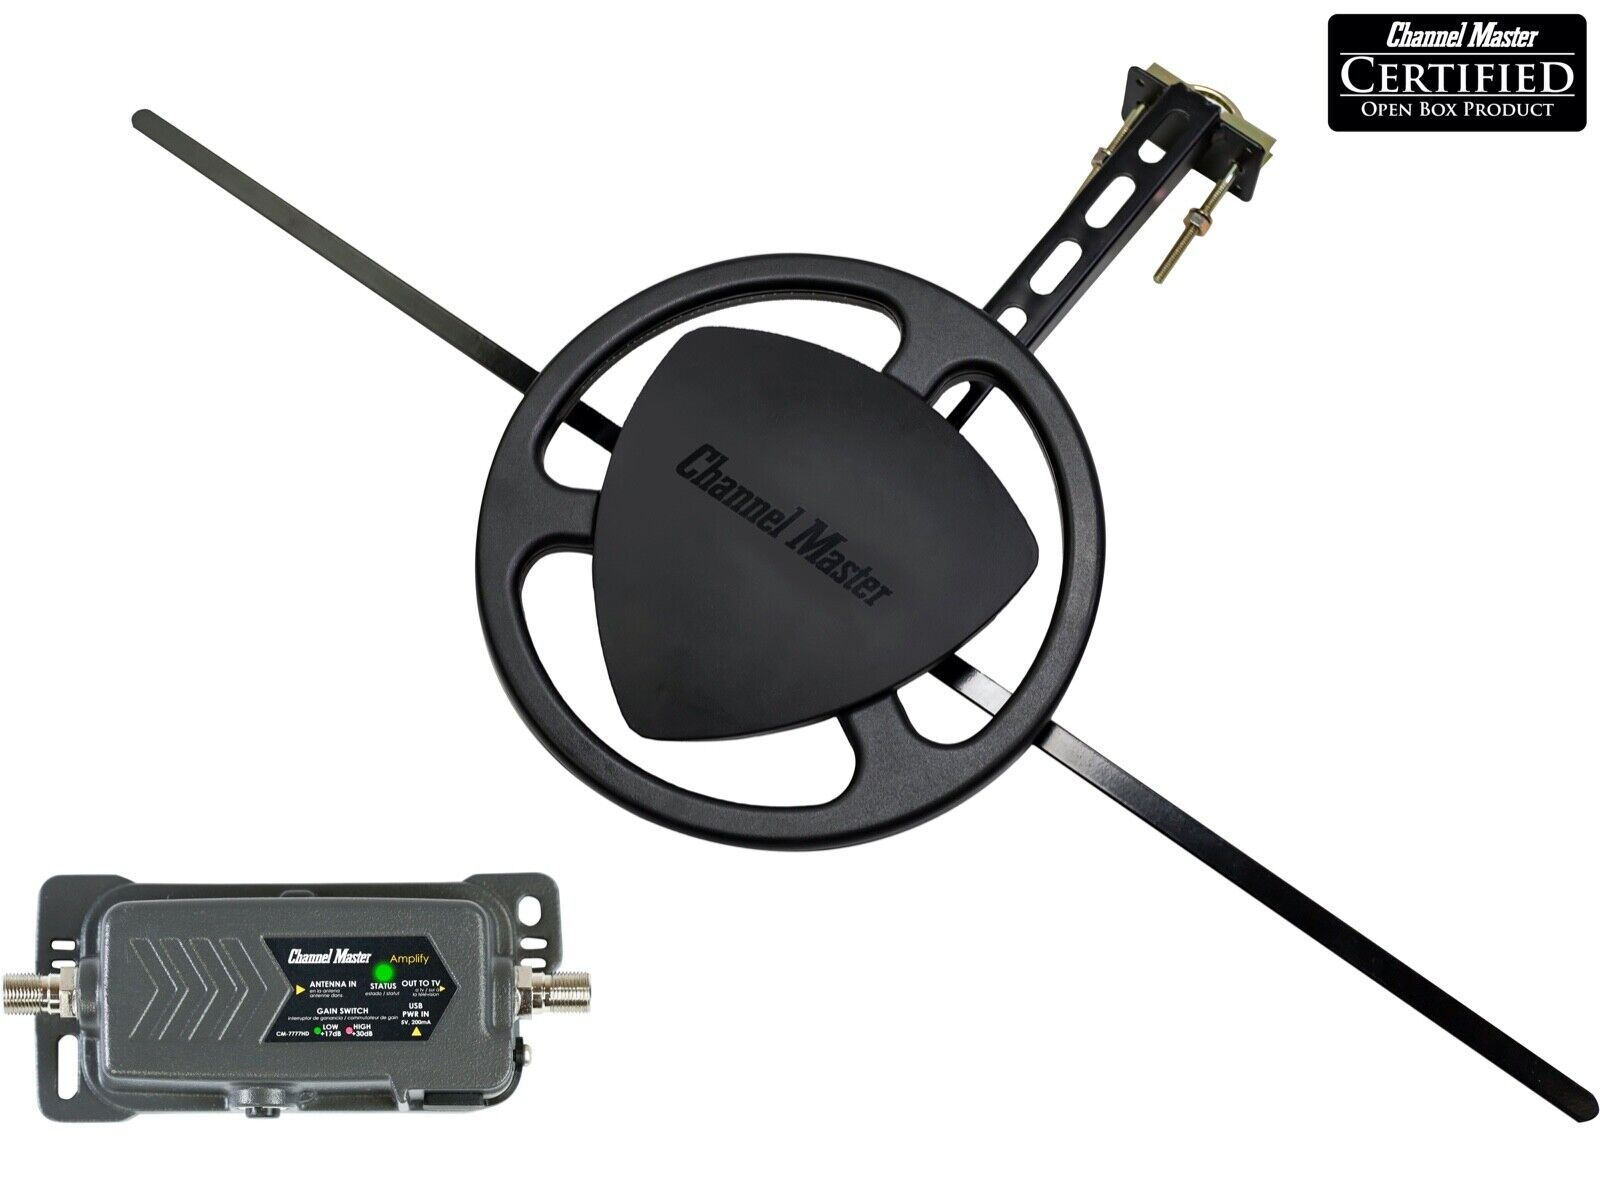 Channel Master Omnidirectional Outdoor TV Antenna Adjustable Preamplifier Bundle. Available Now for 119.00